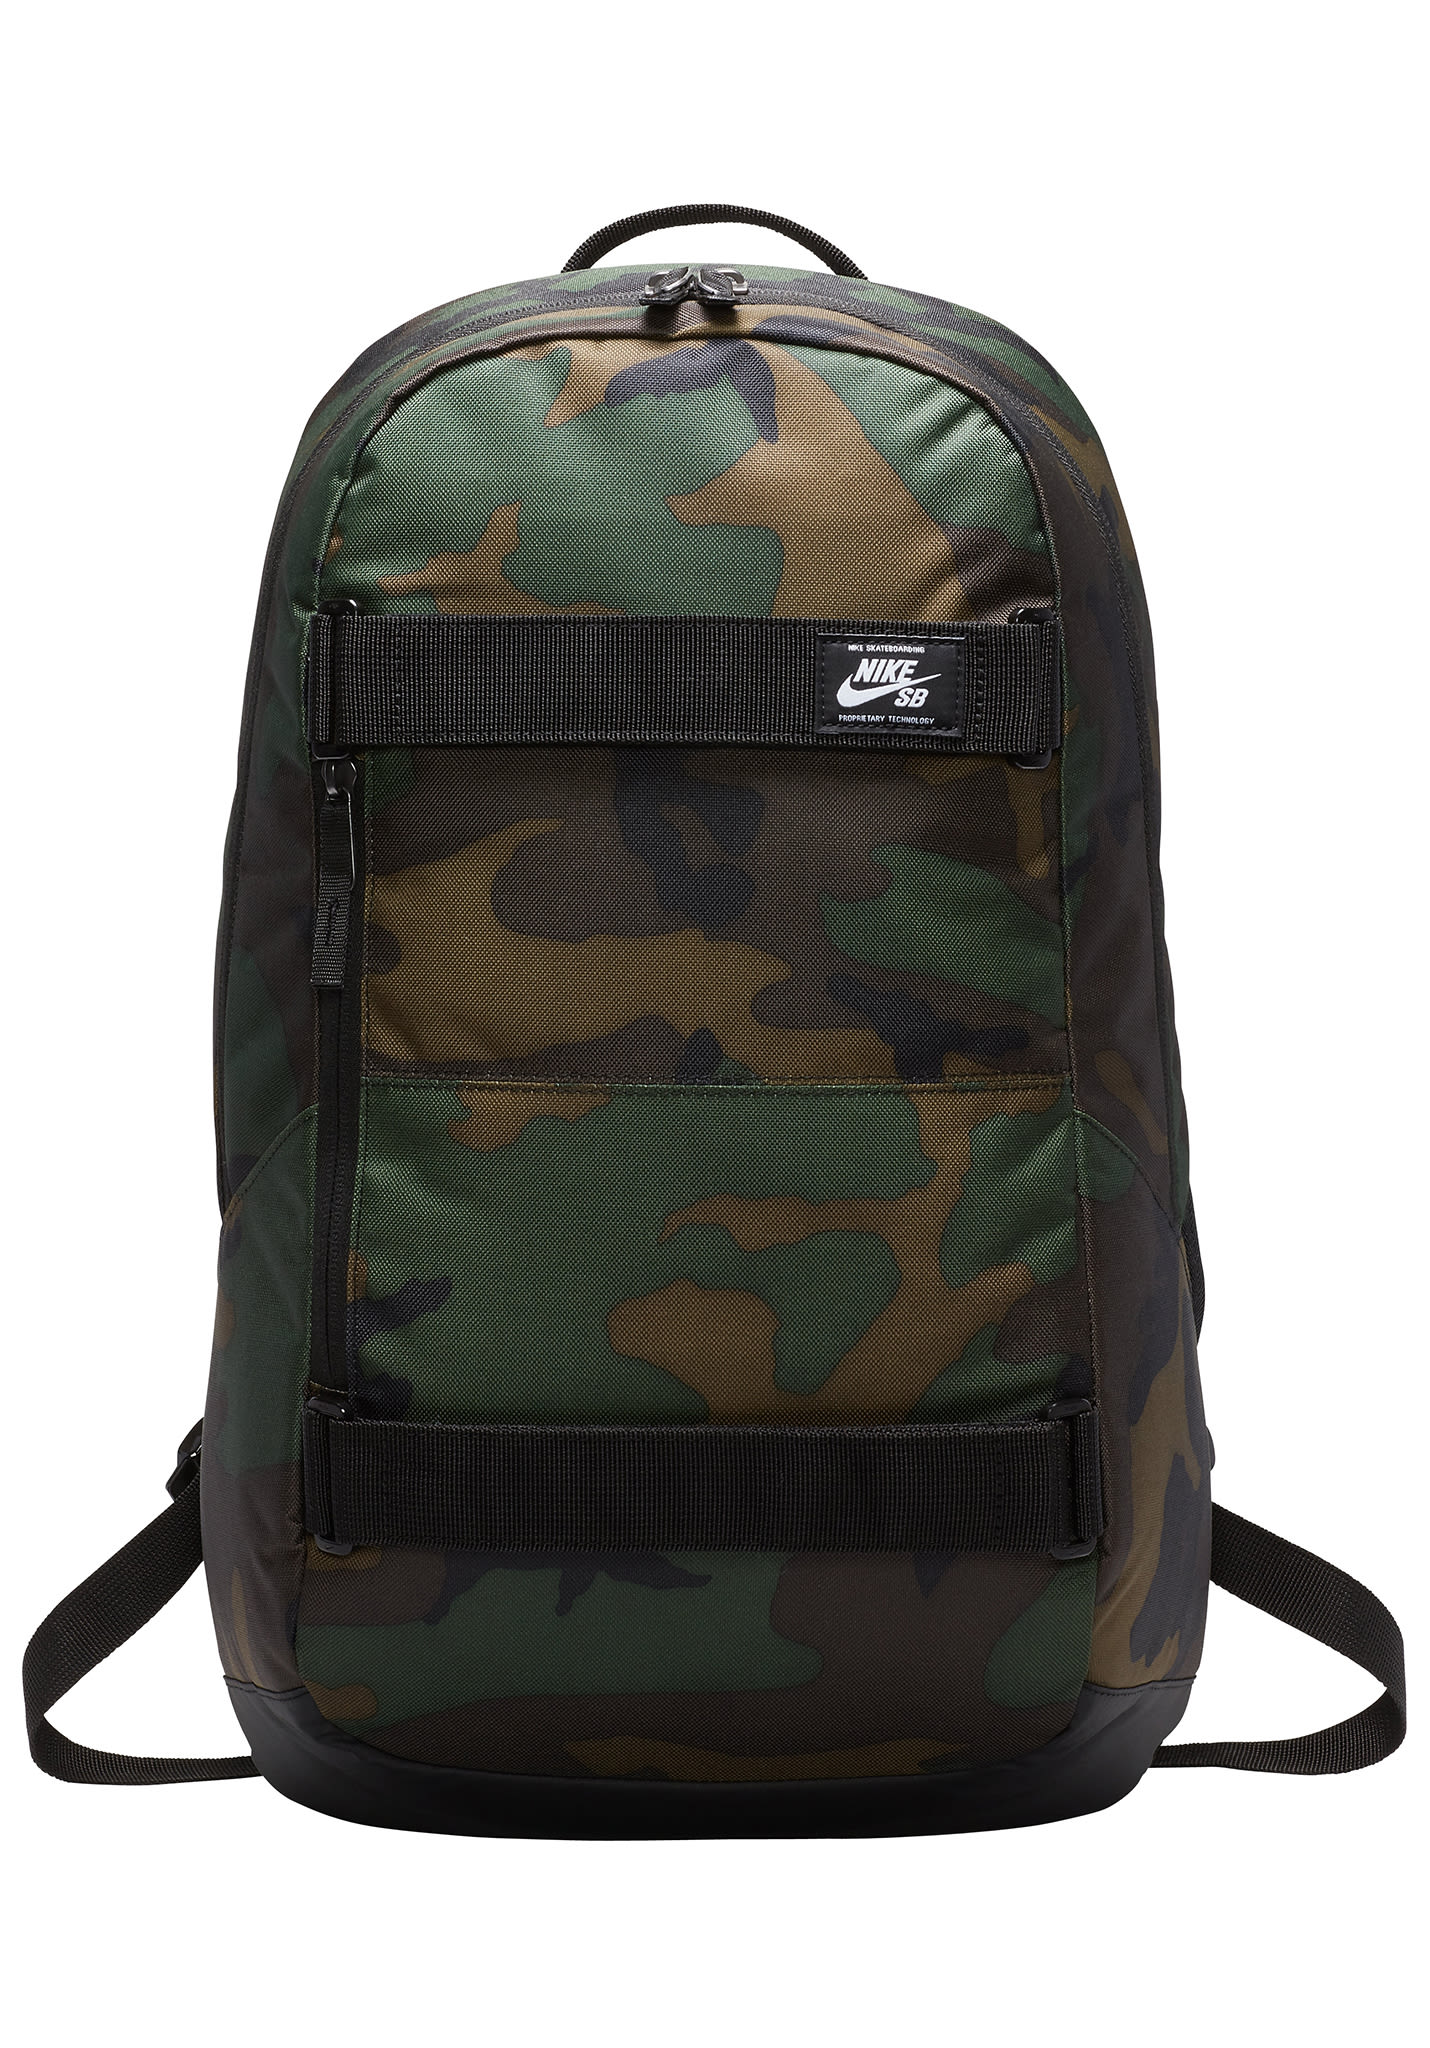 1d0c89ccde NIKE SB Courthouse 24L - Zaino - Camouflage - Planet Sports